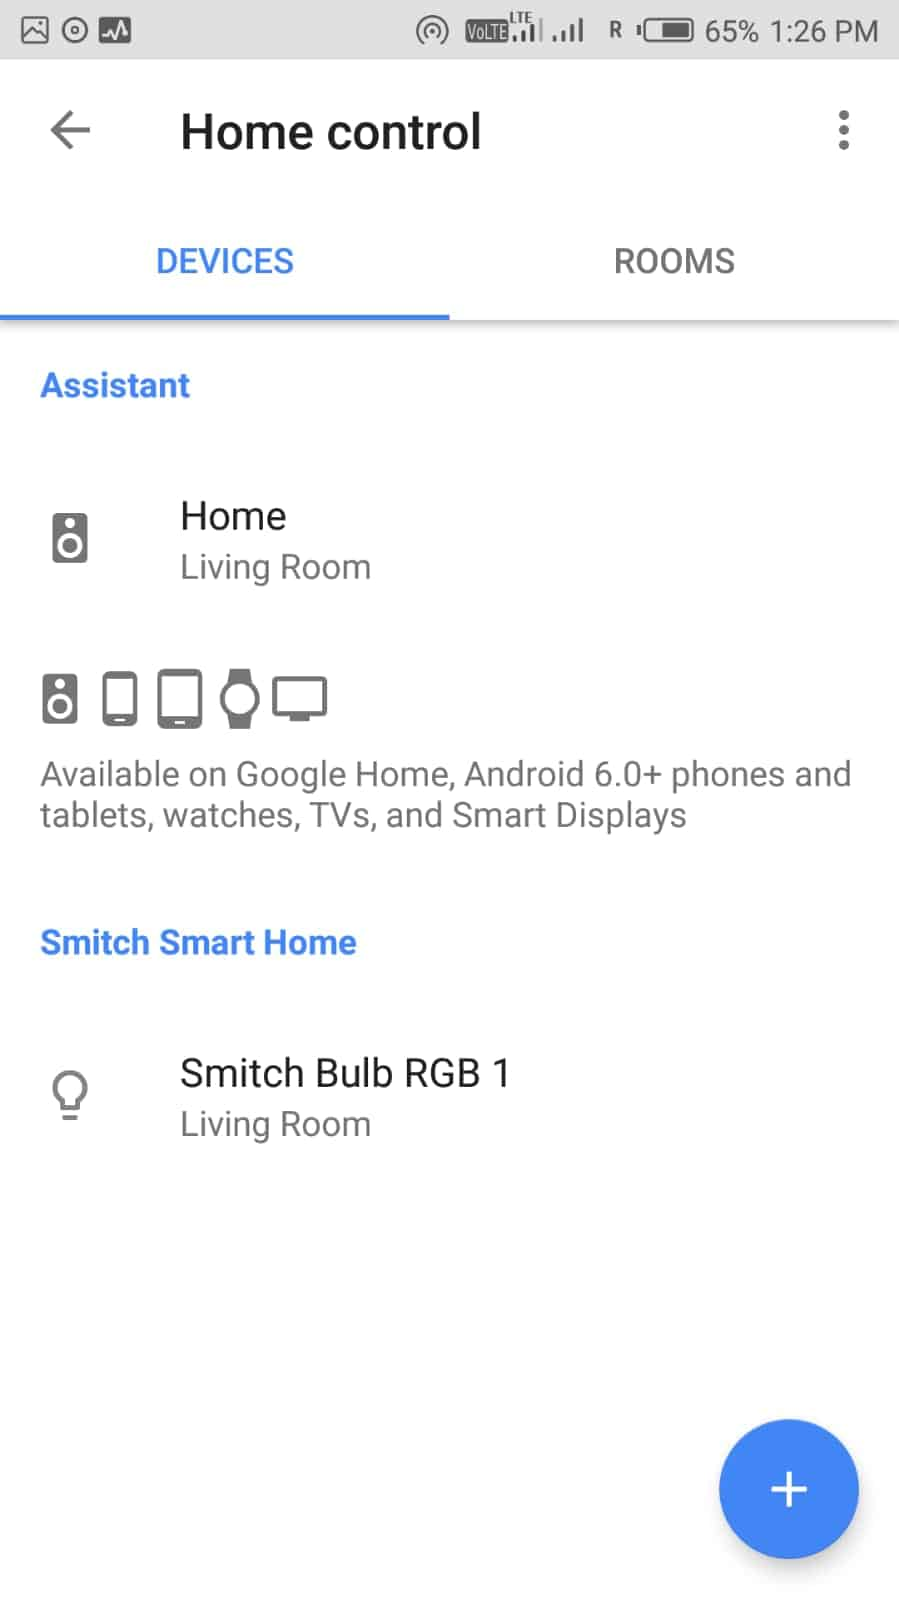 List of Connected smart home control devices in Google assistant